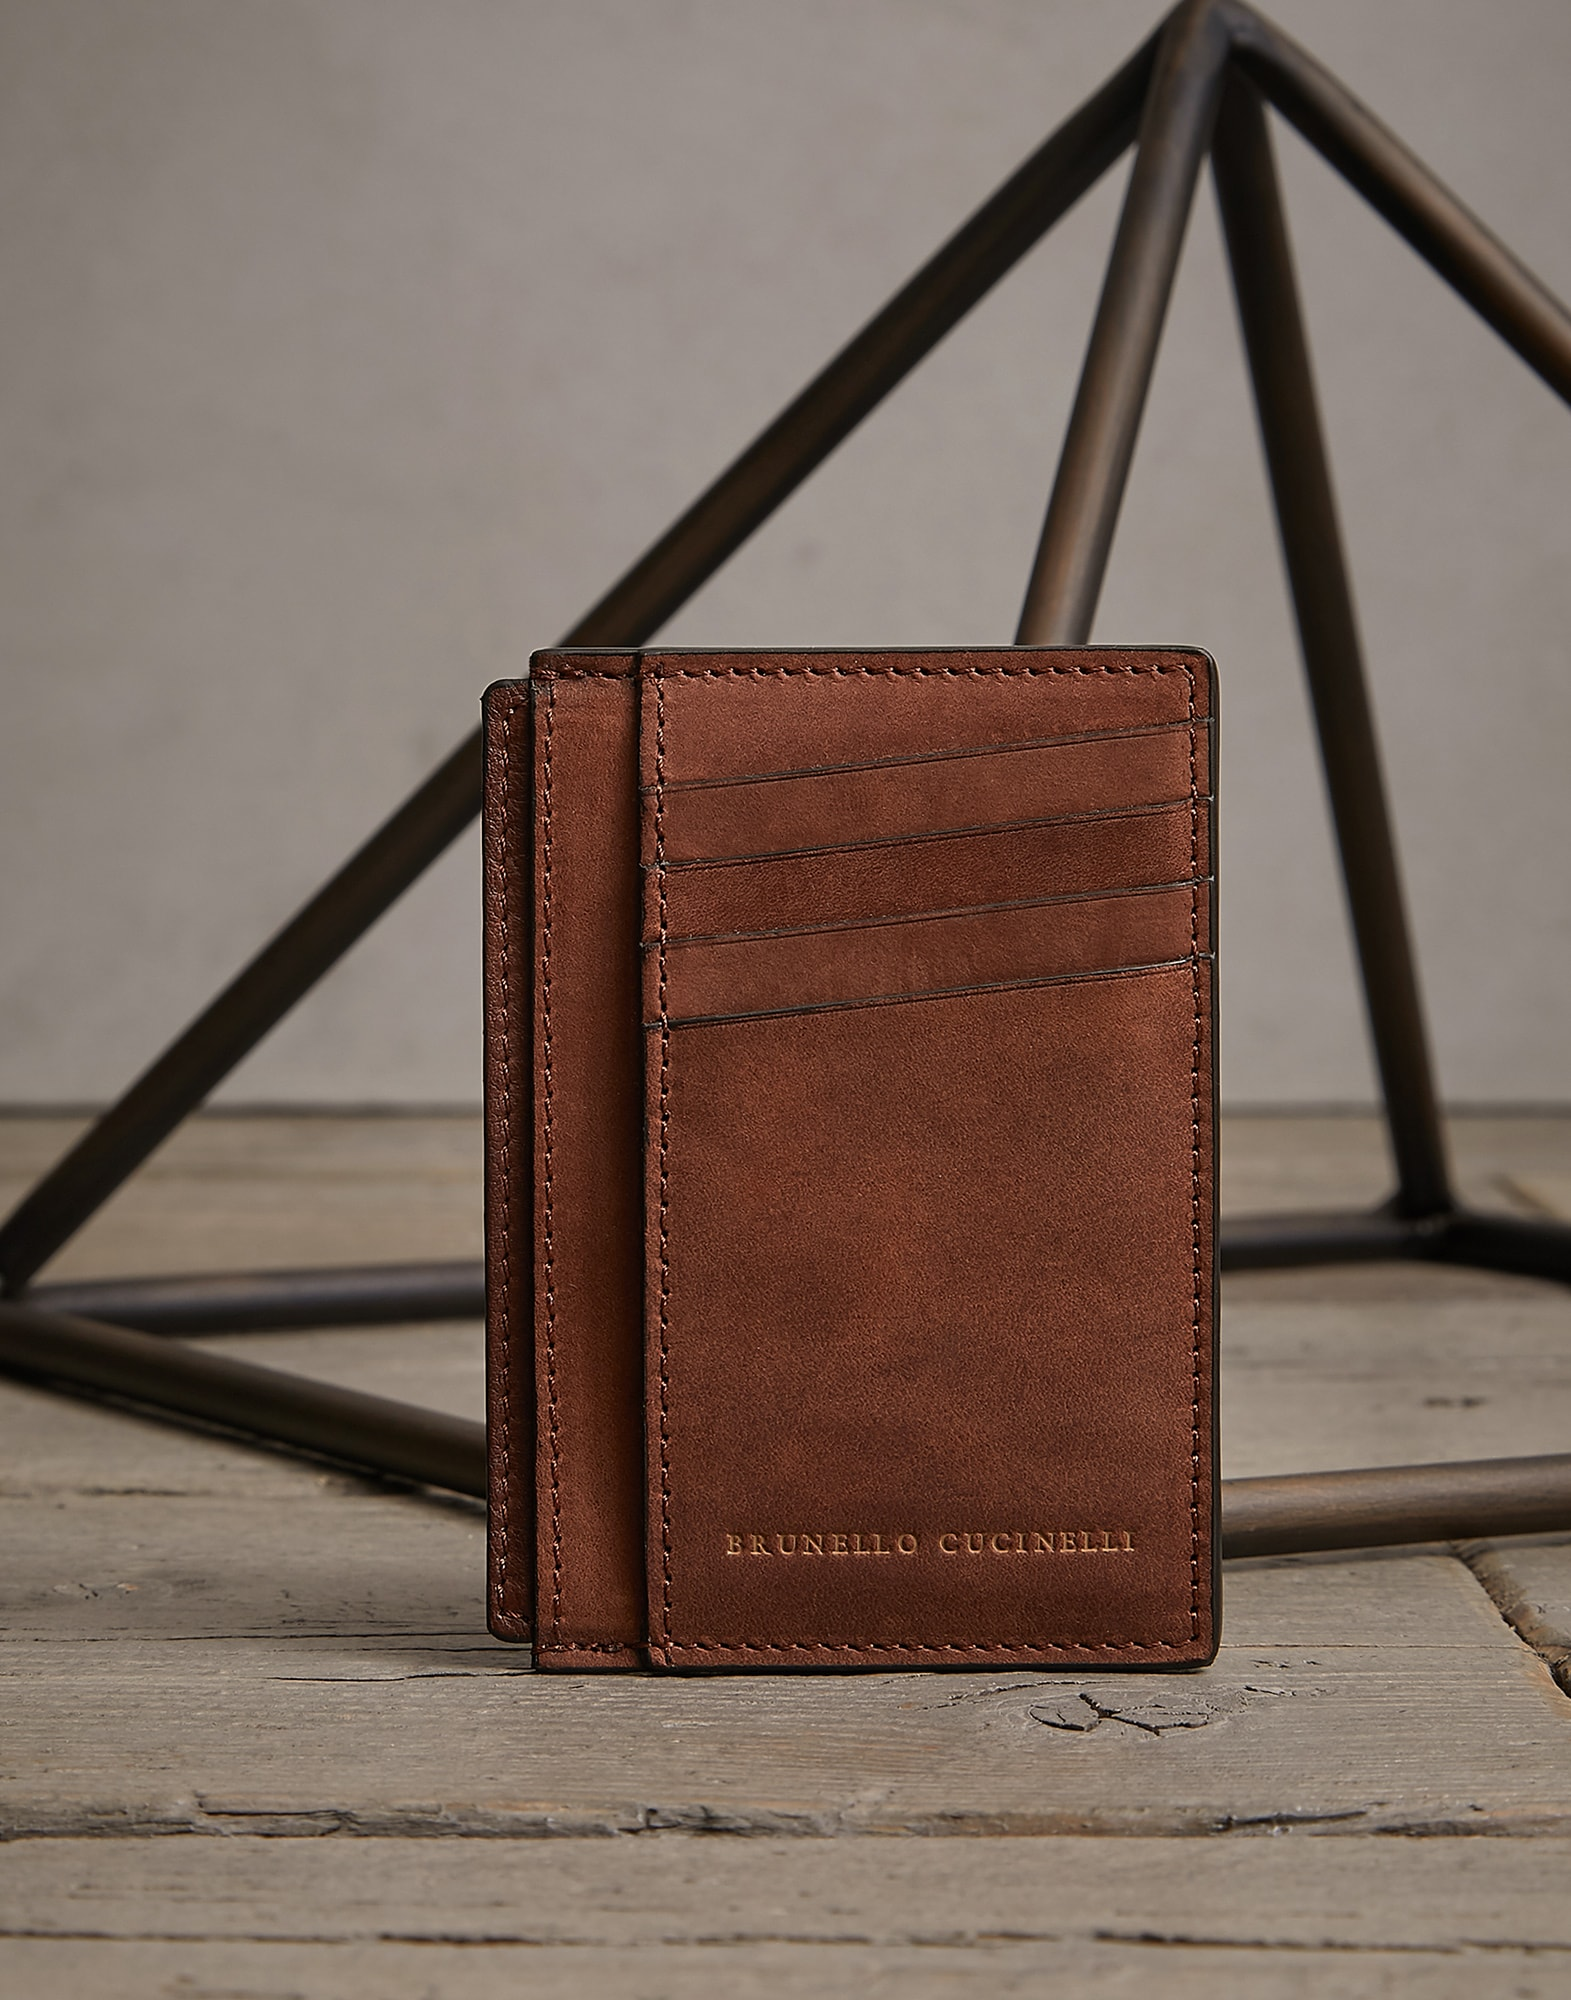 Card Holder Bark Man 0 - Brunello Cucinelli